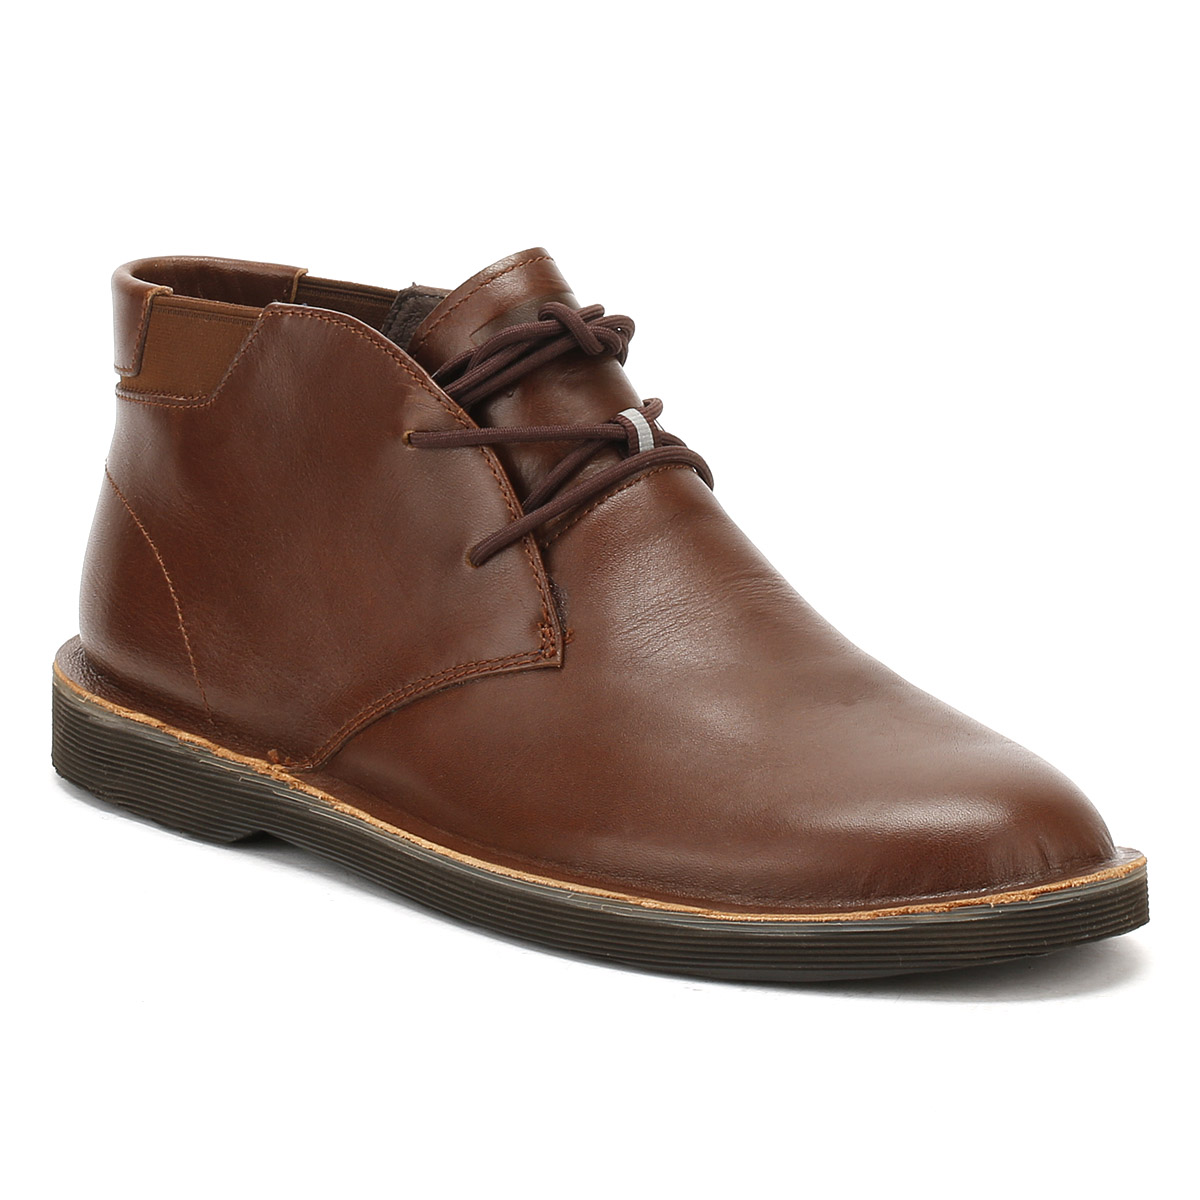 Camper Hombre Hombre Hombre Morrys Desert botas, Lace Up Leather Smart Casual Ankle Zapatos 6ee60a